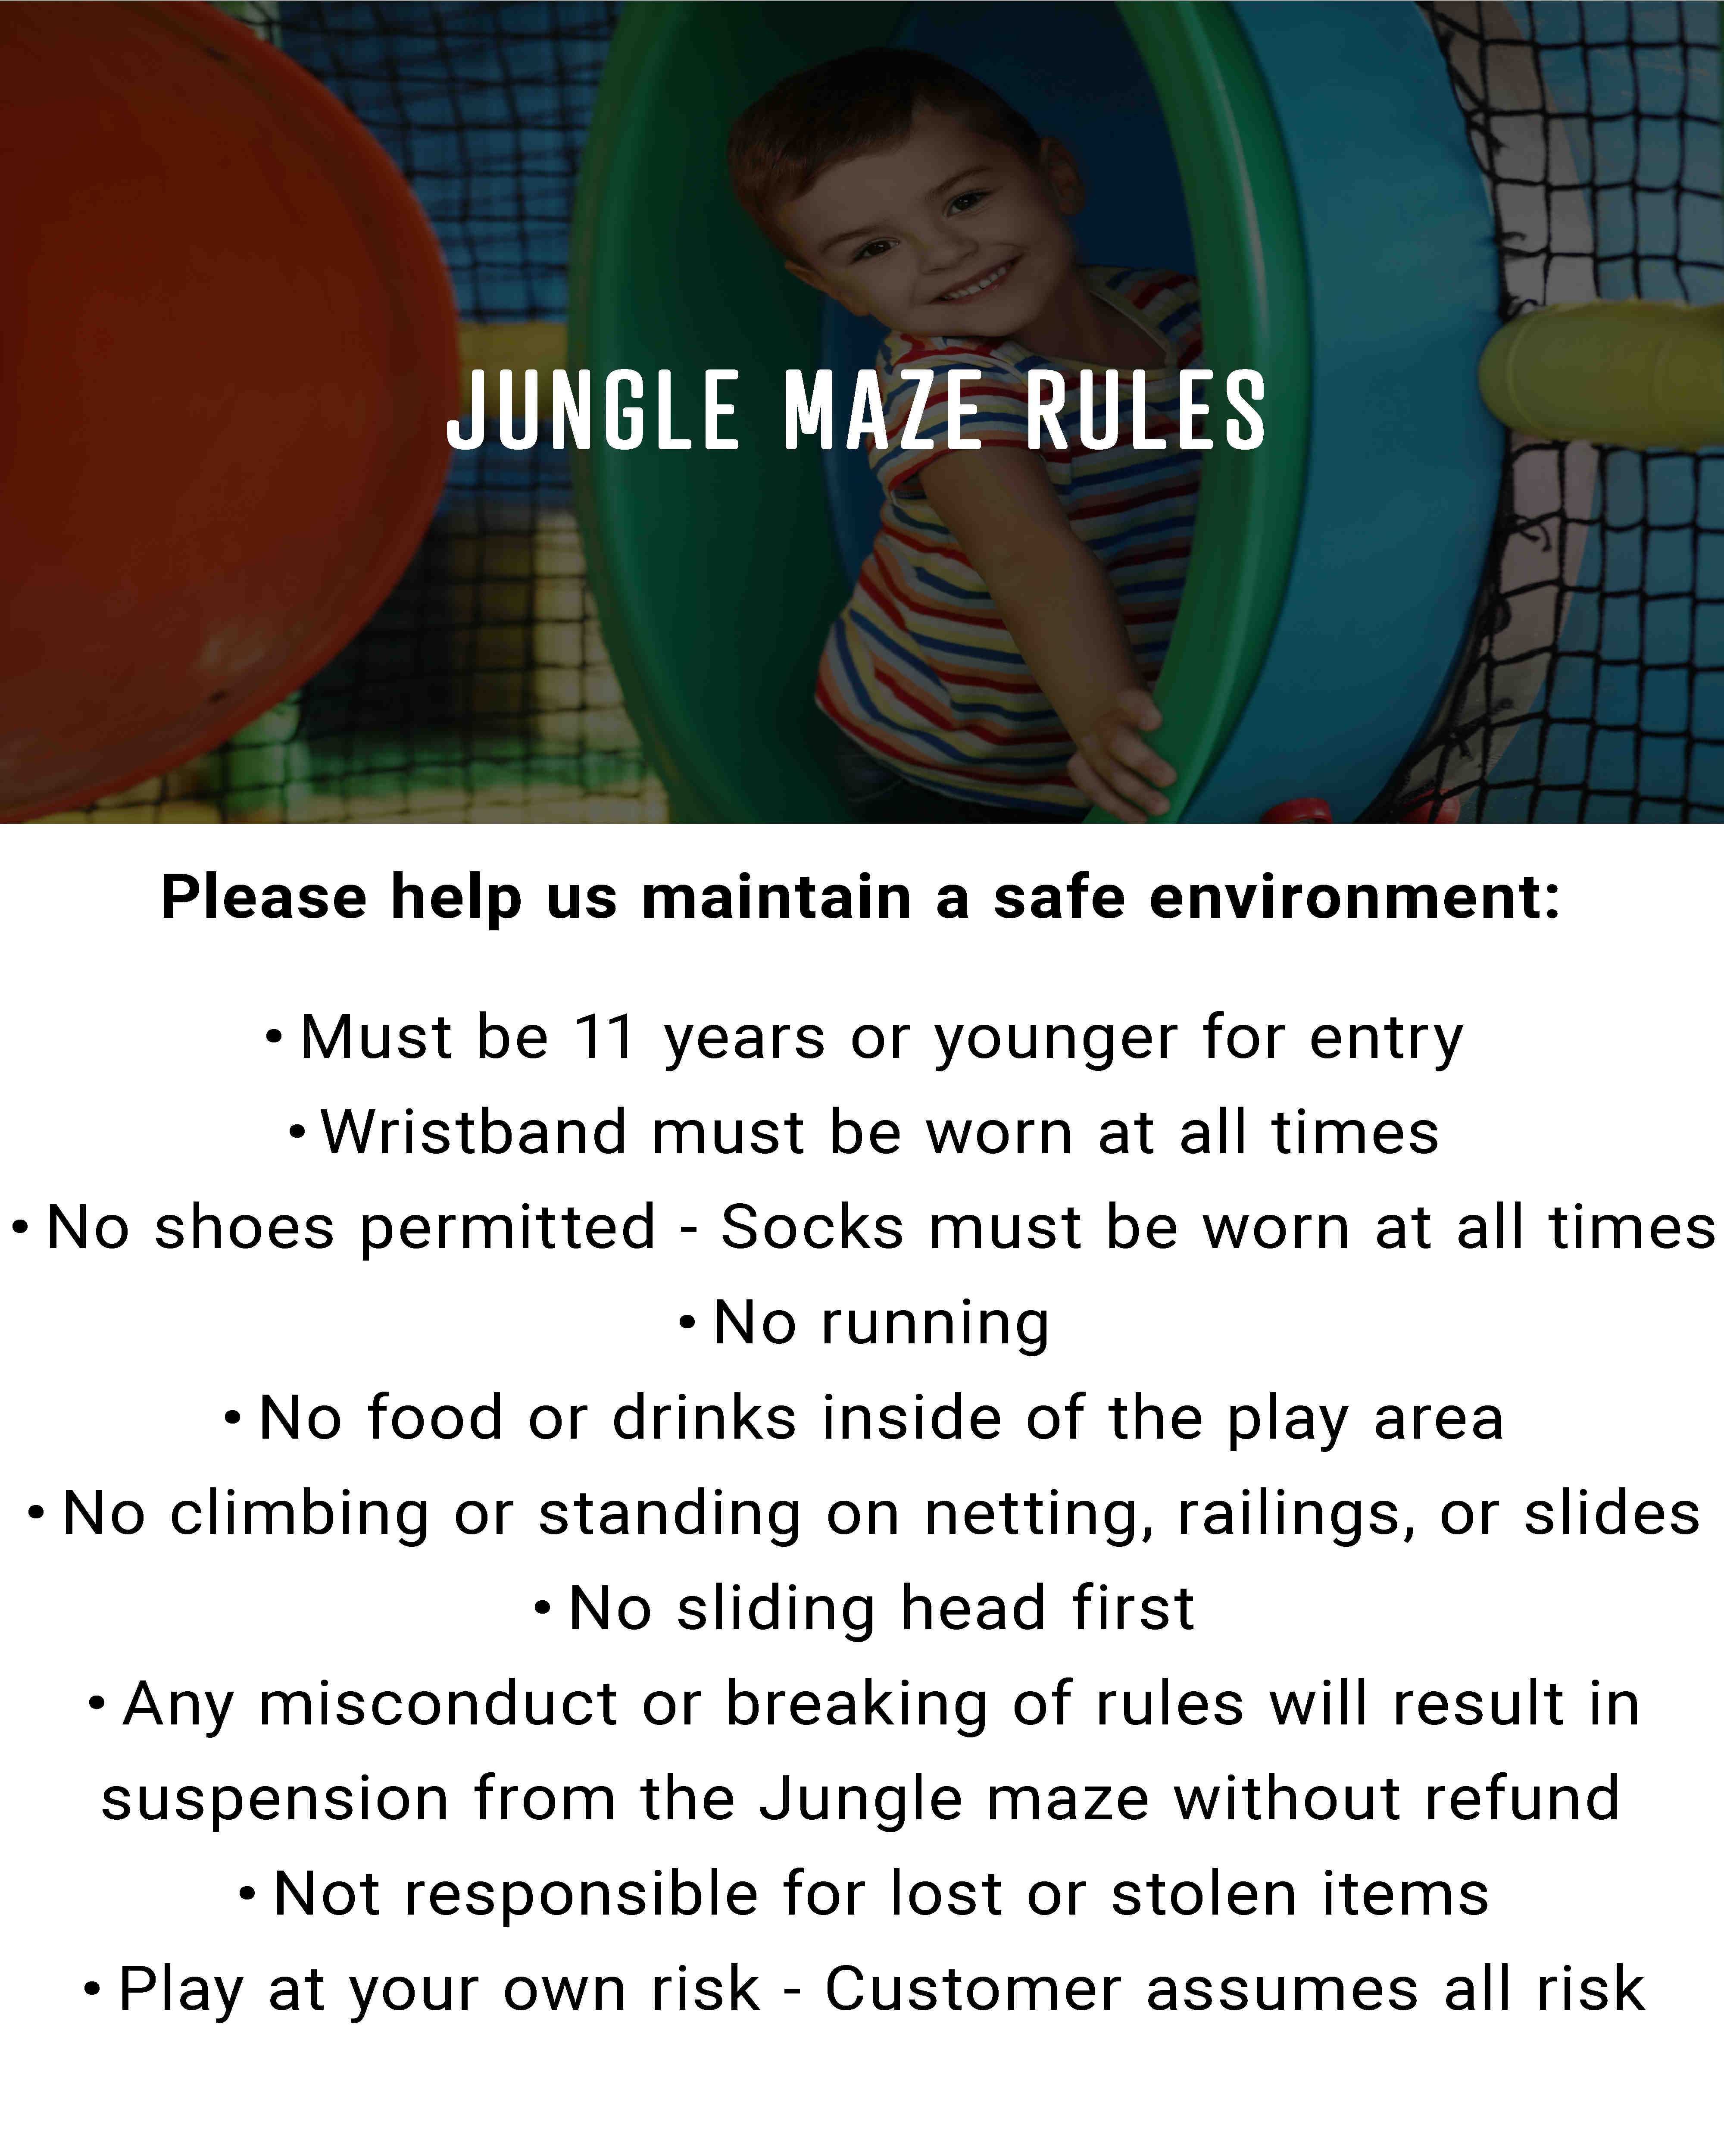 Jungle maze play structure rules